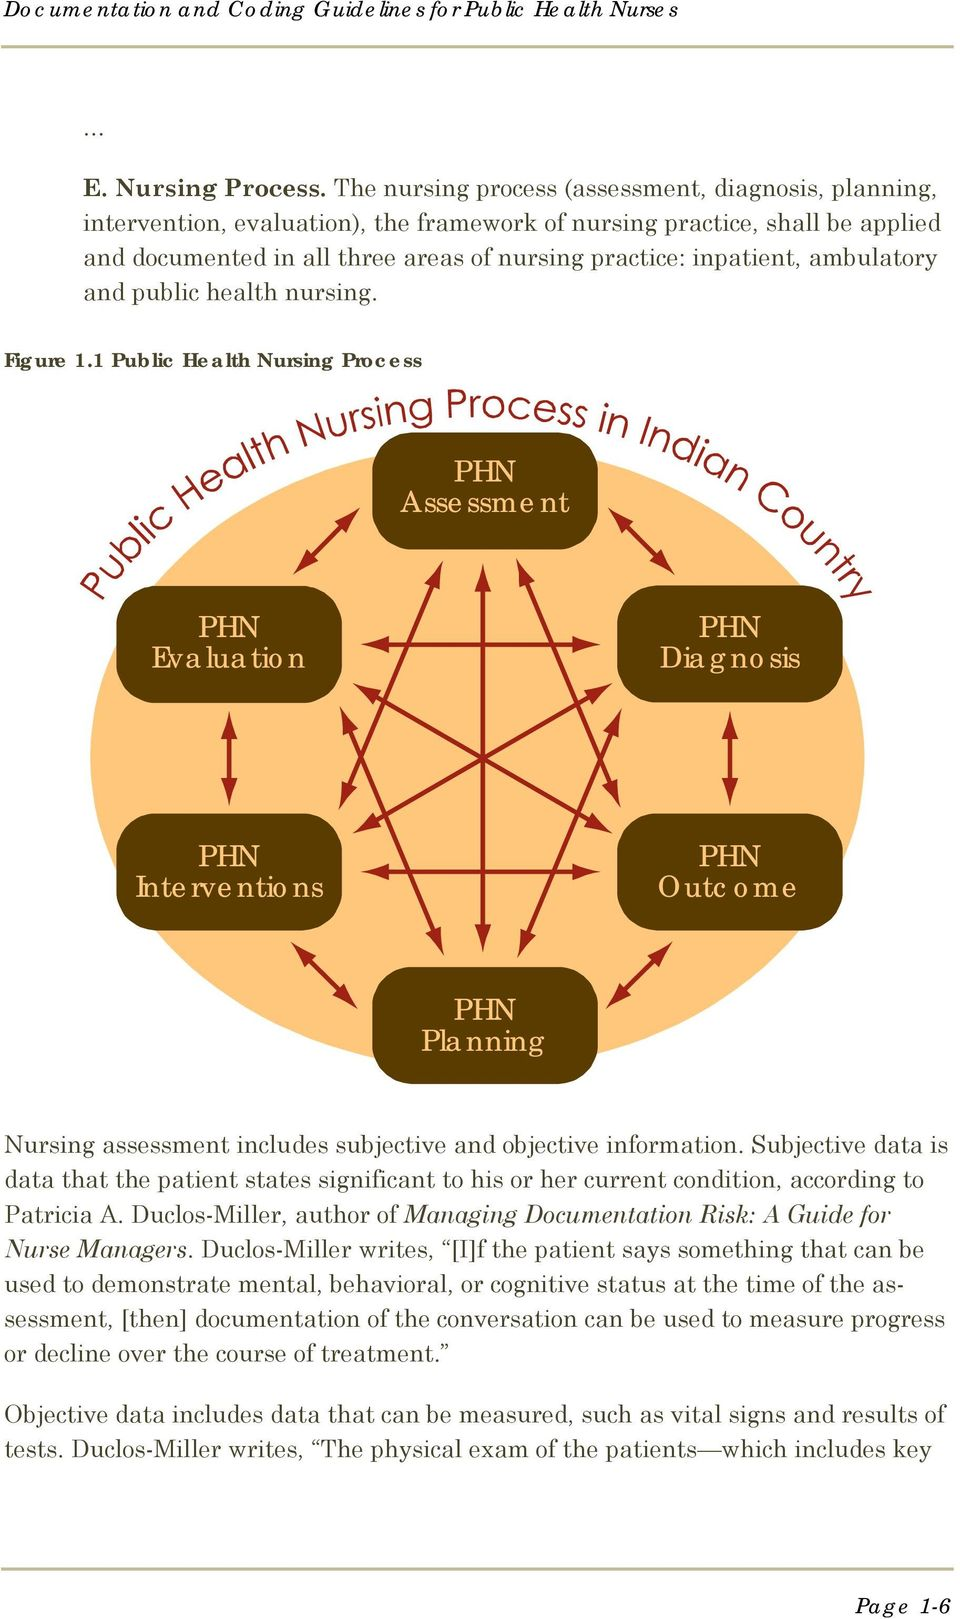 ambulatory and public health nursing. Figure 1.